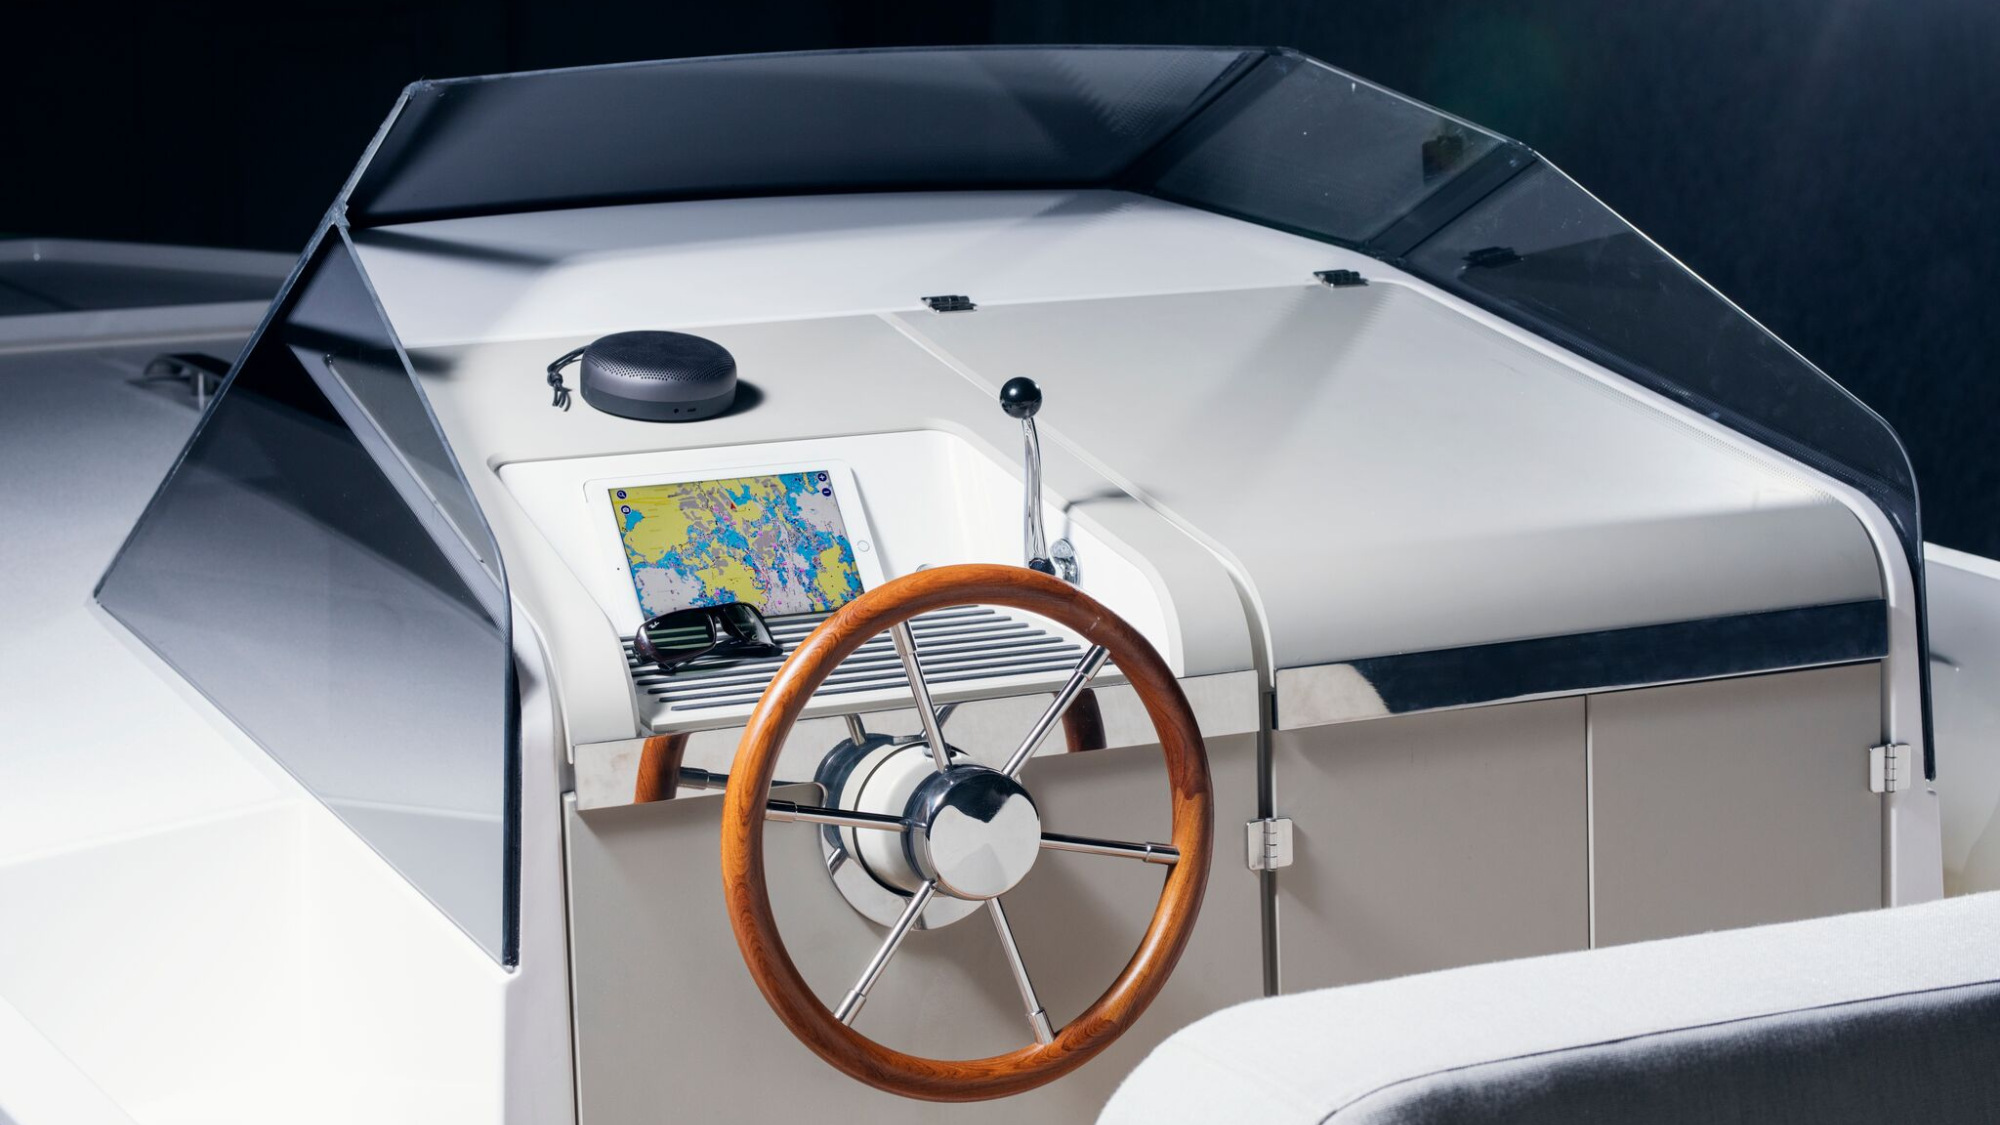 Q-Yachts is behind the wheel of a boating revolution.